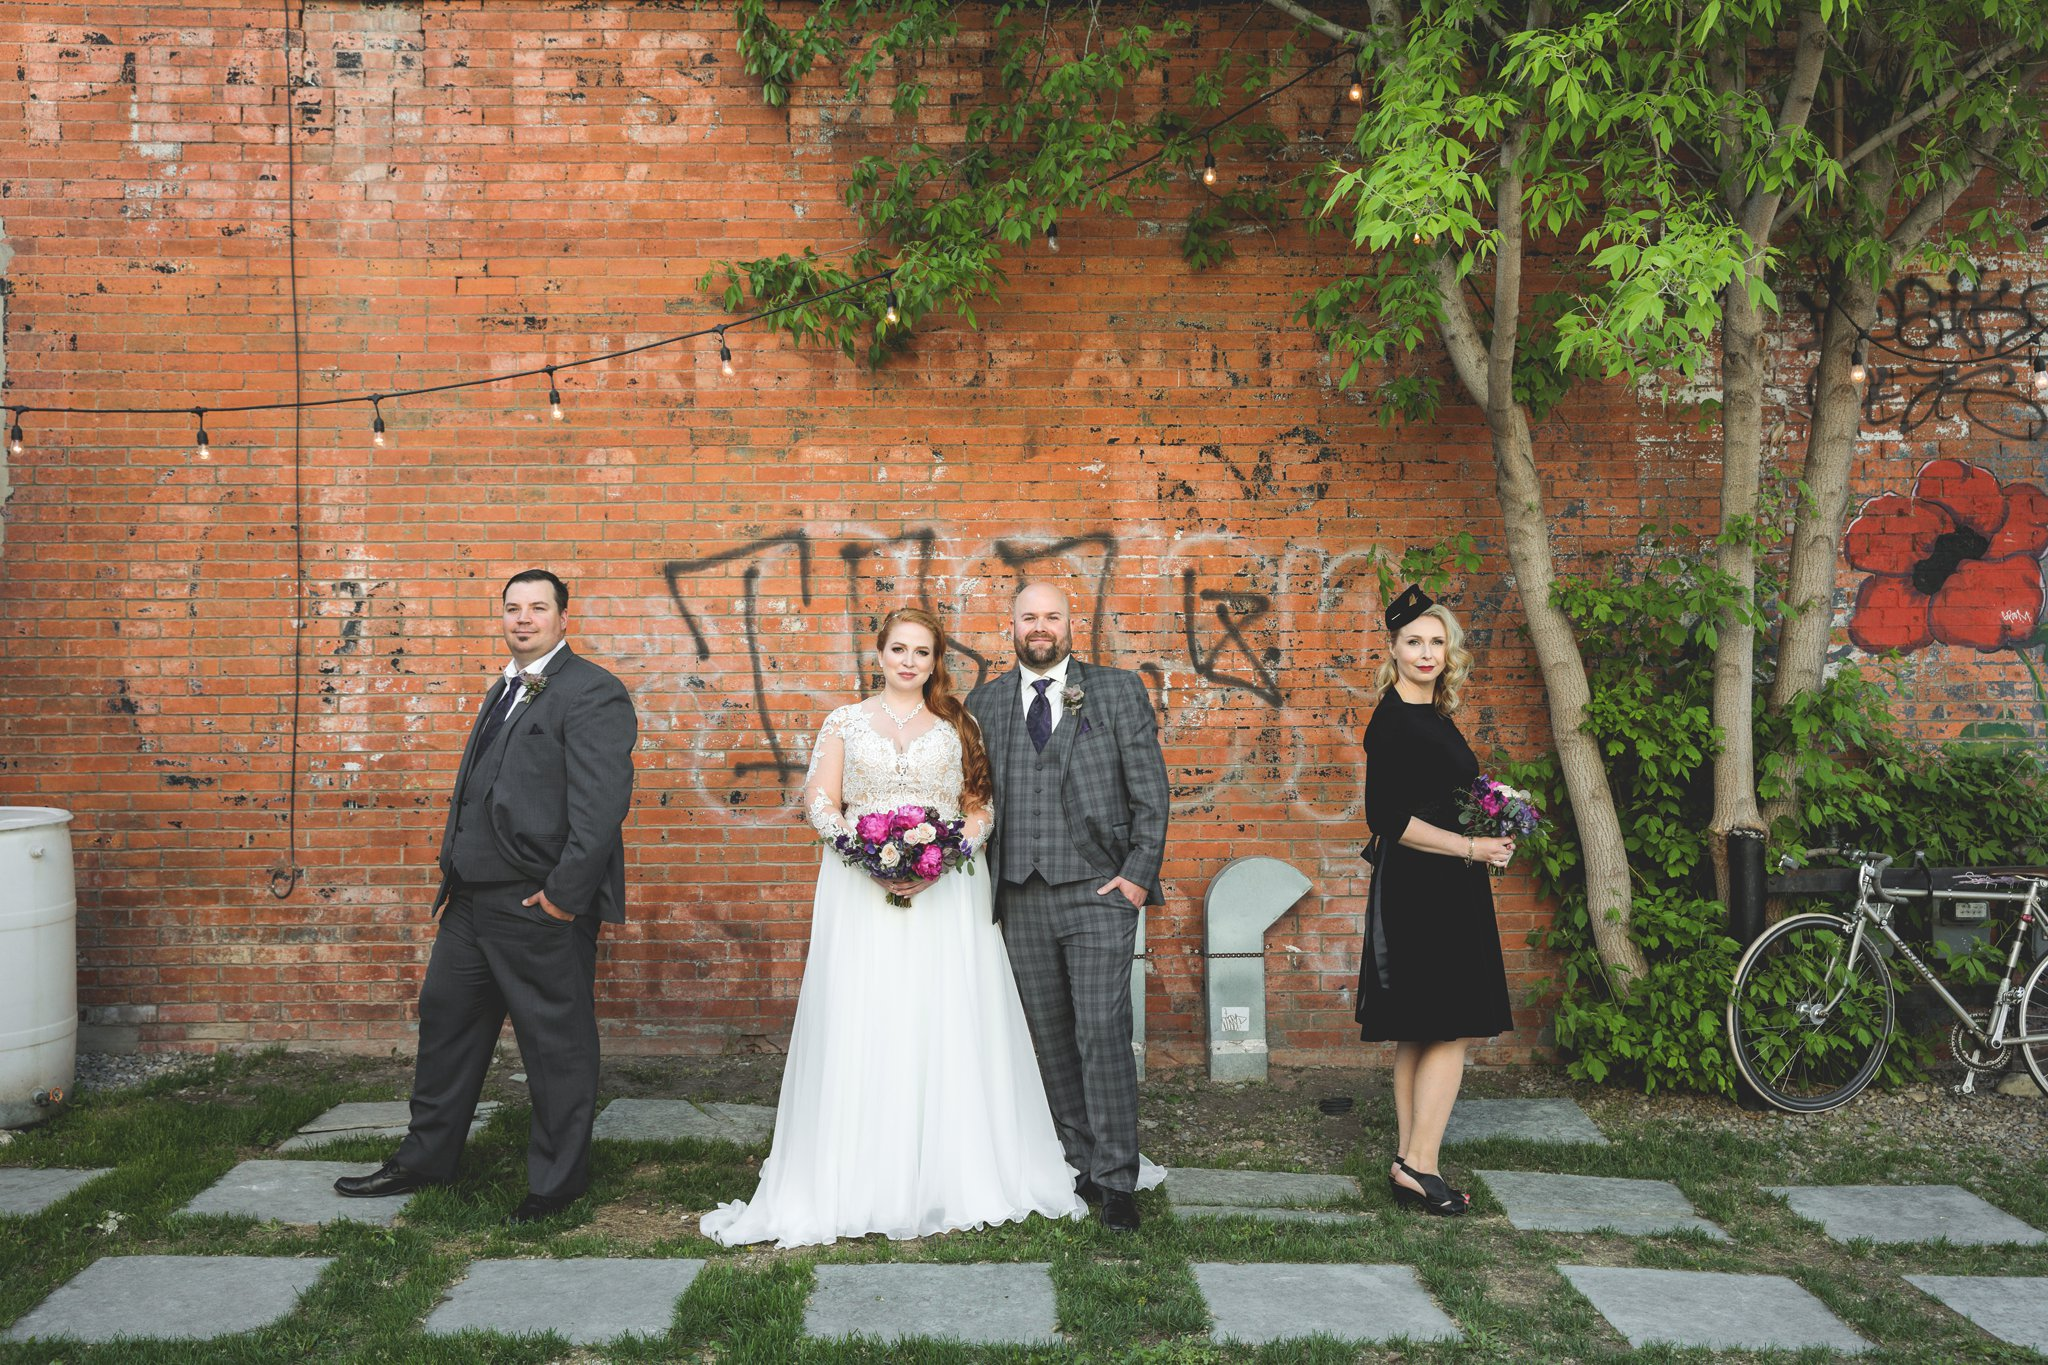 AshleyDaphnePhotography Calgary Wedding Photographer Rouge Inglewood Bride Groom Photography_0098.jpg